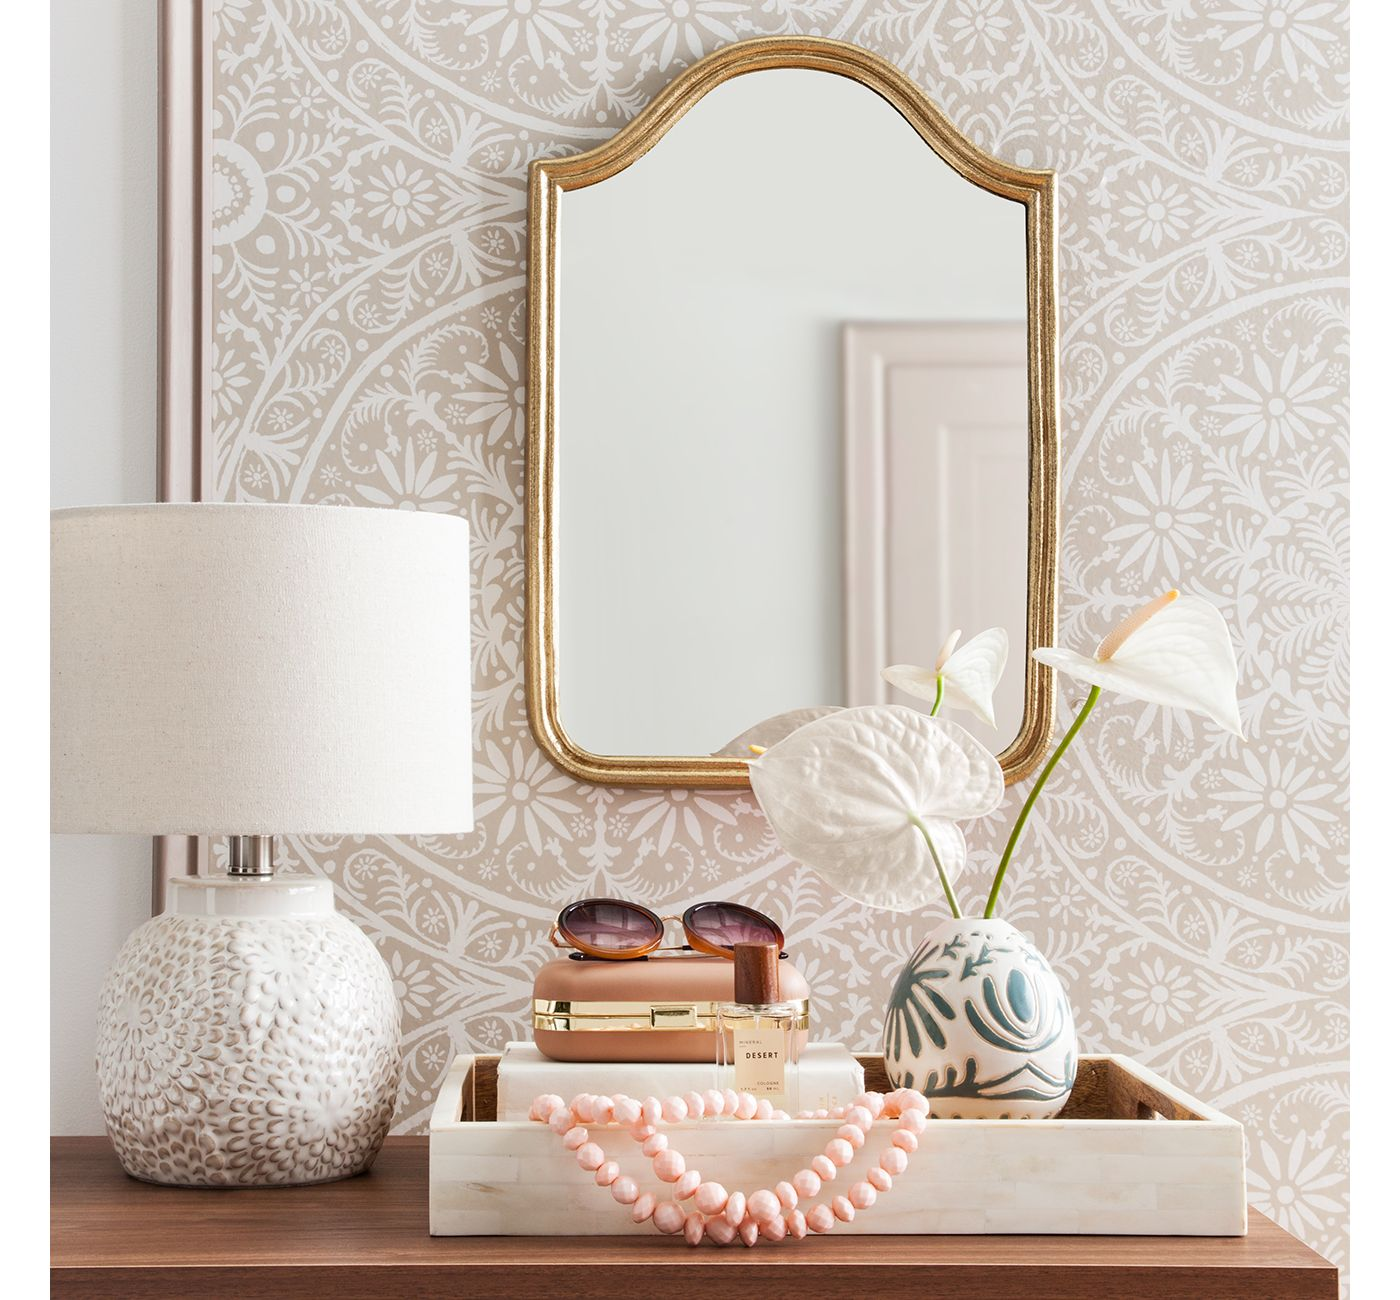 Anthropologie Gleaming Primrose Mirror, Anthropologie Gleaming Primrose Mirror dupes, affordable dupes for the Gleaming Primrose Mirror, gold mirror home ideas, gold mirror home decor, gold mirror home styling, gold mirror home inspiration, interior, home decor, home interior, interior styling, anthropologie dupes, glam home style, glam home inspiration, Jennifer Worman, Red Soles and Red Wine, Decorative Wall Mirror Gold - Opalhouse™